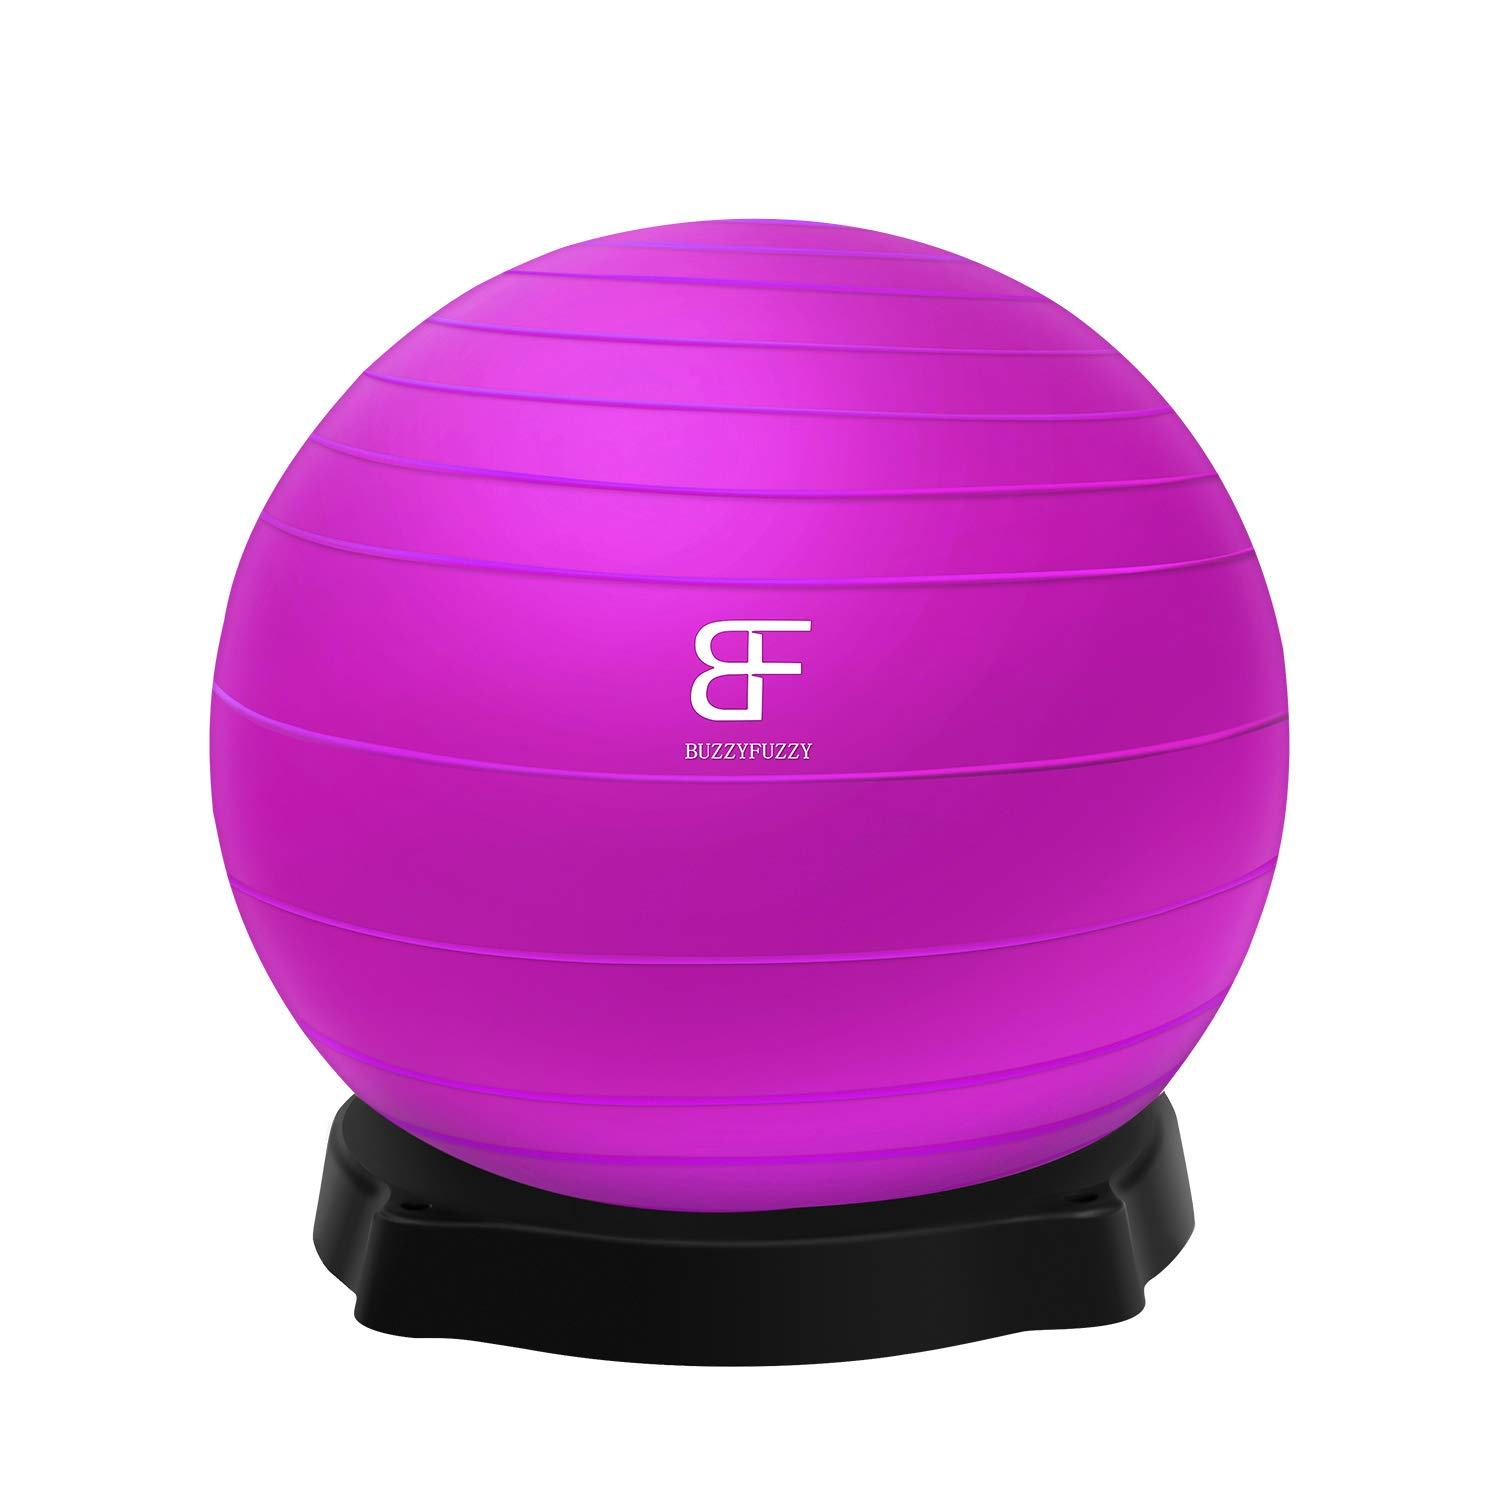 buzzyfuzzy Anti-Burst Exercise Ball for Workout Fitness/core Training,65cm eco Friendly Yoga Ball,Alternative to Office Desk Chair with Holder Base/Rack(Purple) by buzzyfuzzy